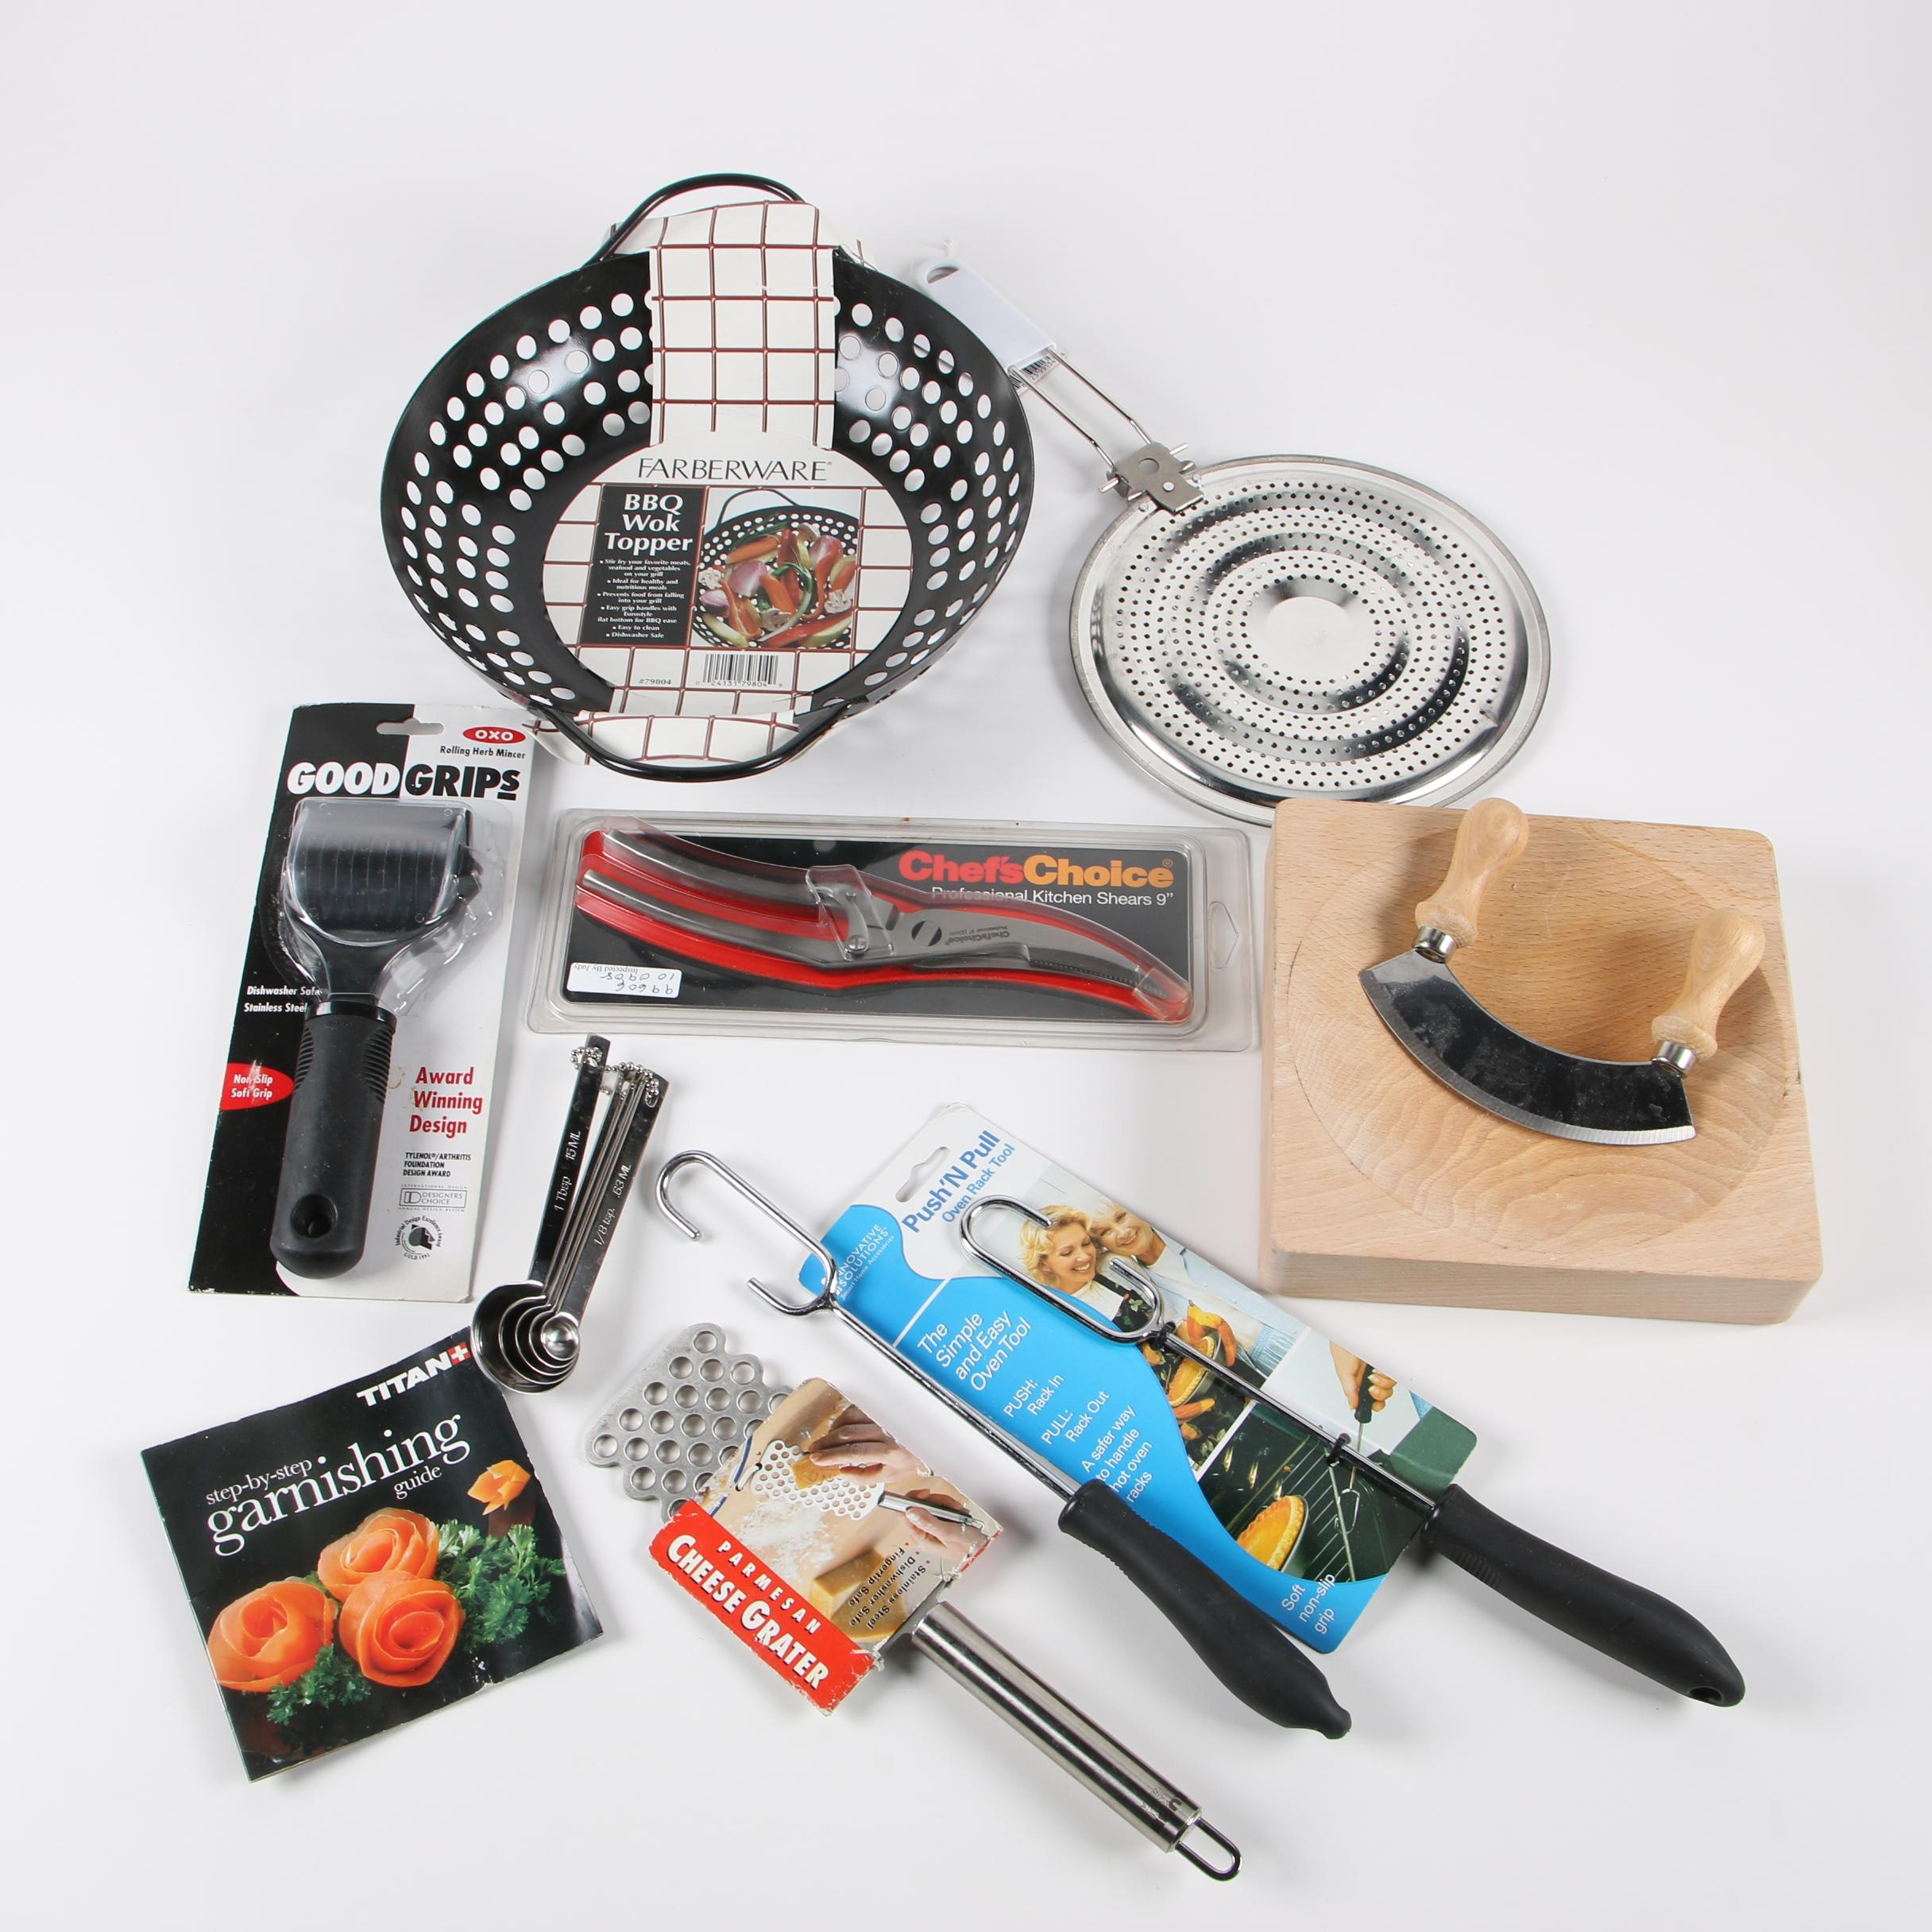 Kitchen Gadgets, Tools, and Cookware